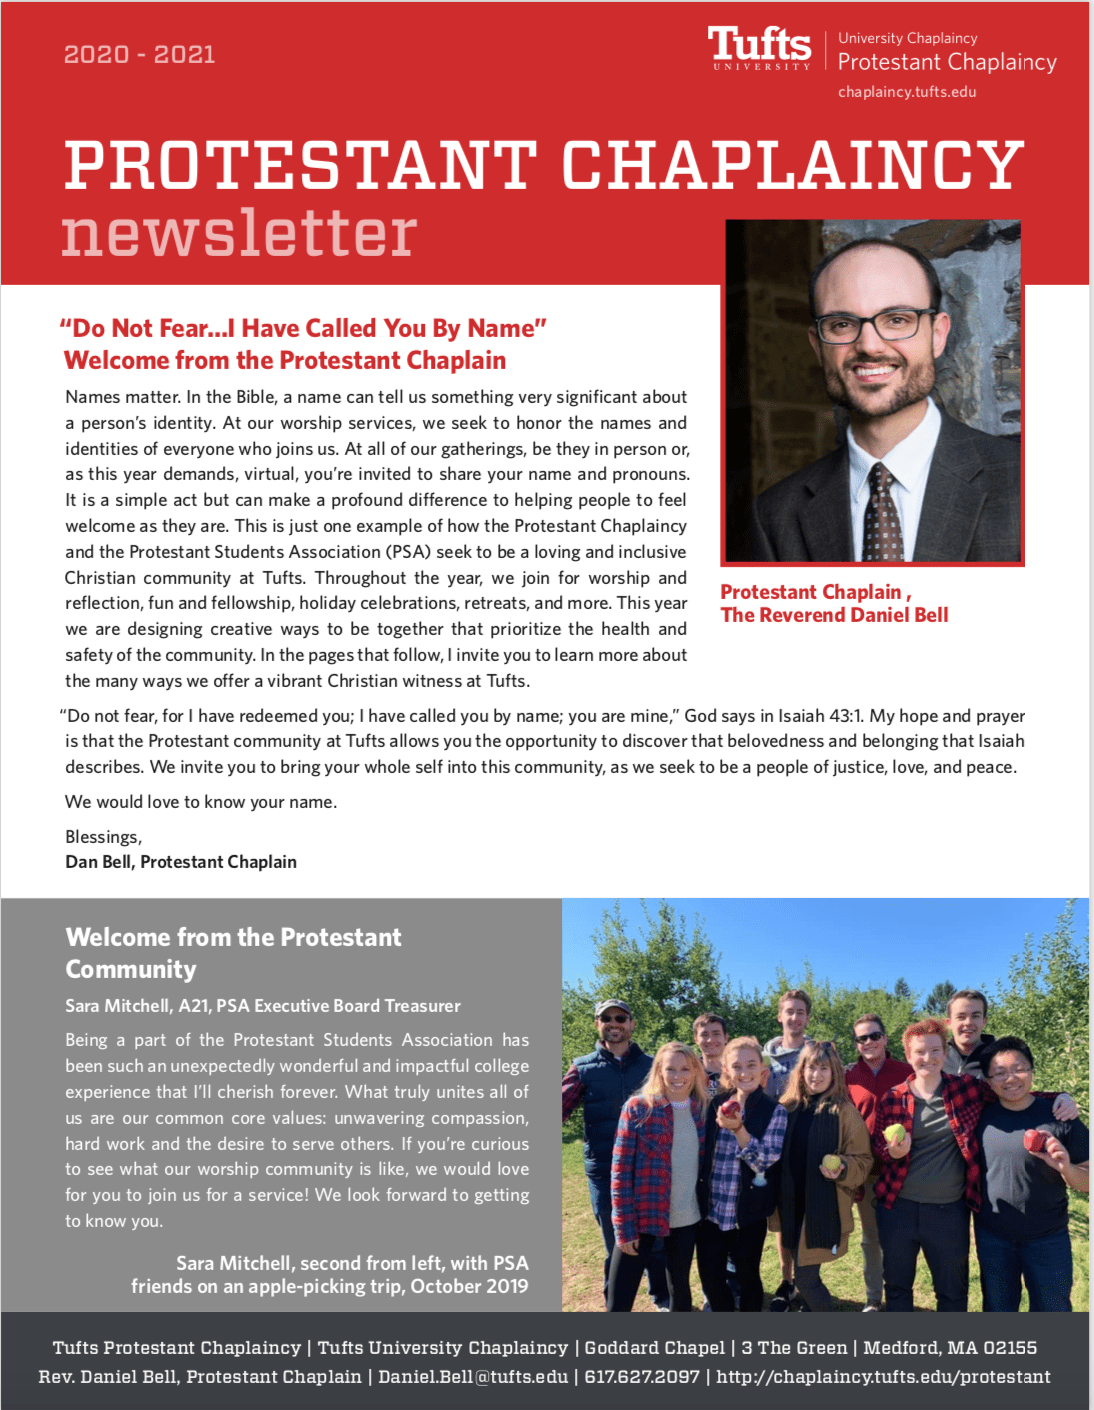 First page of the Protestant Chaplaincy newsletter